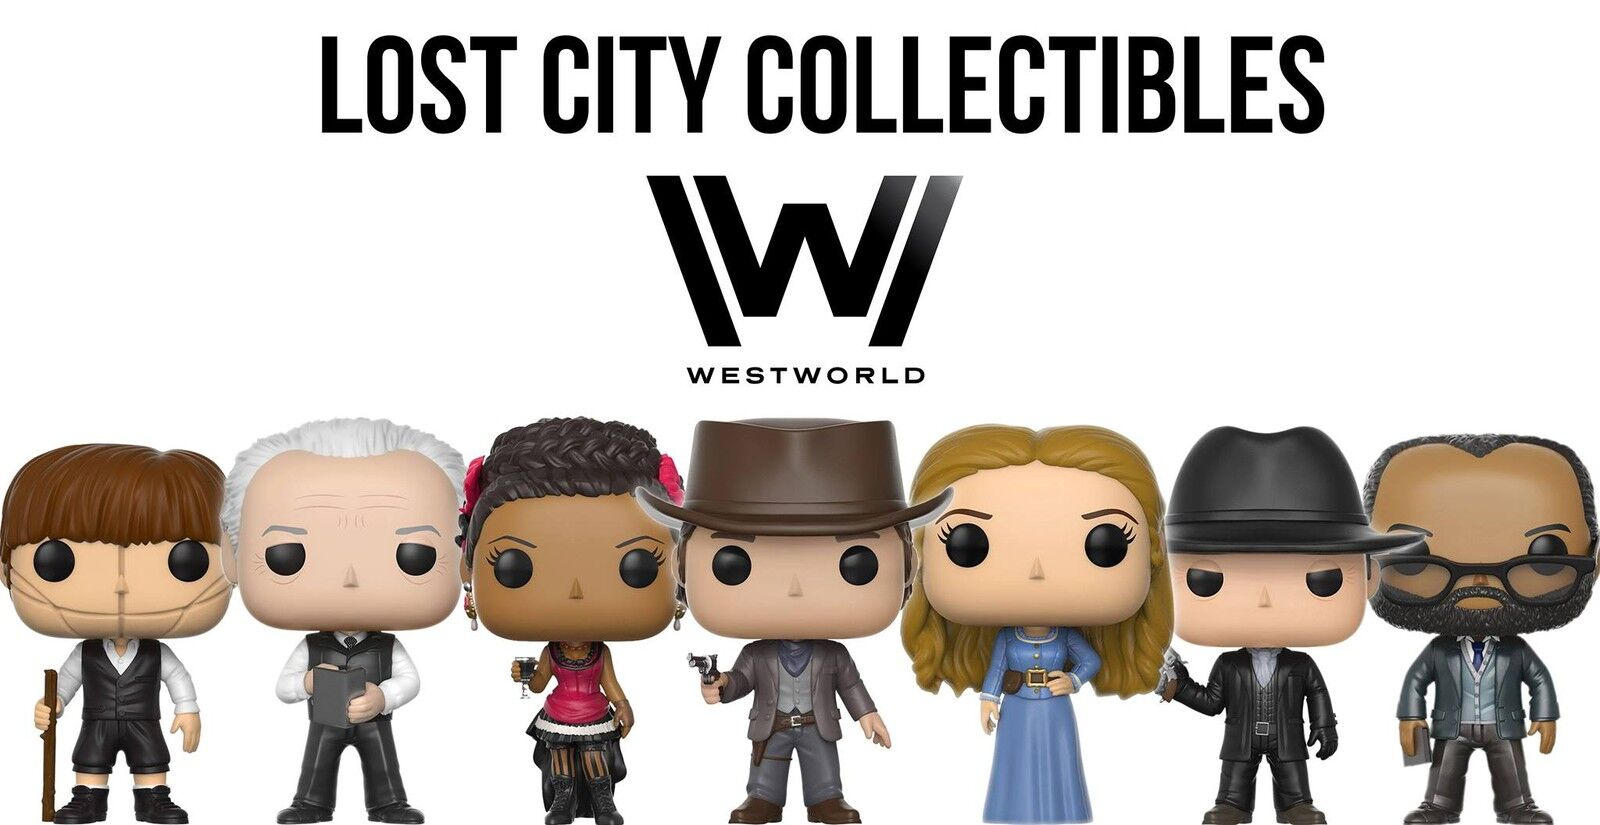 Lost City Collectibles